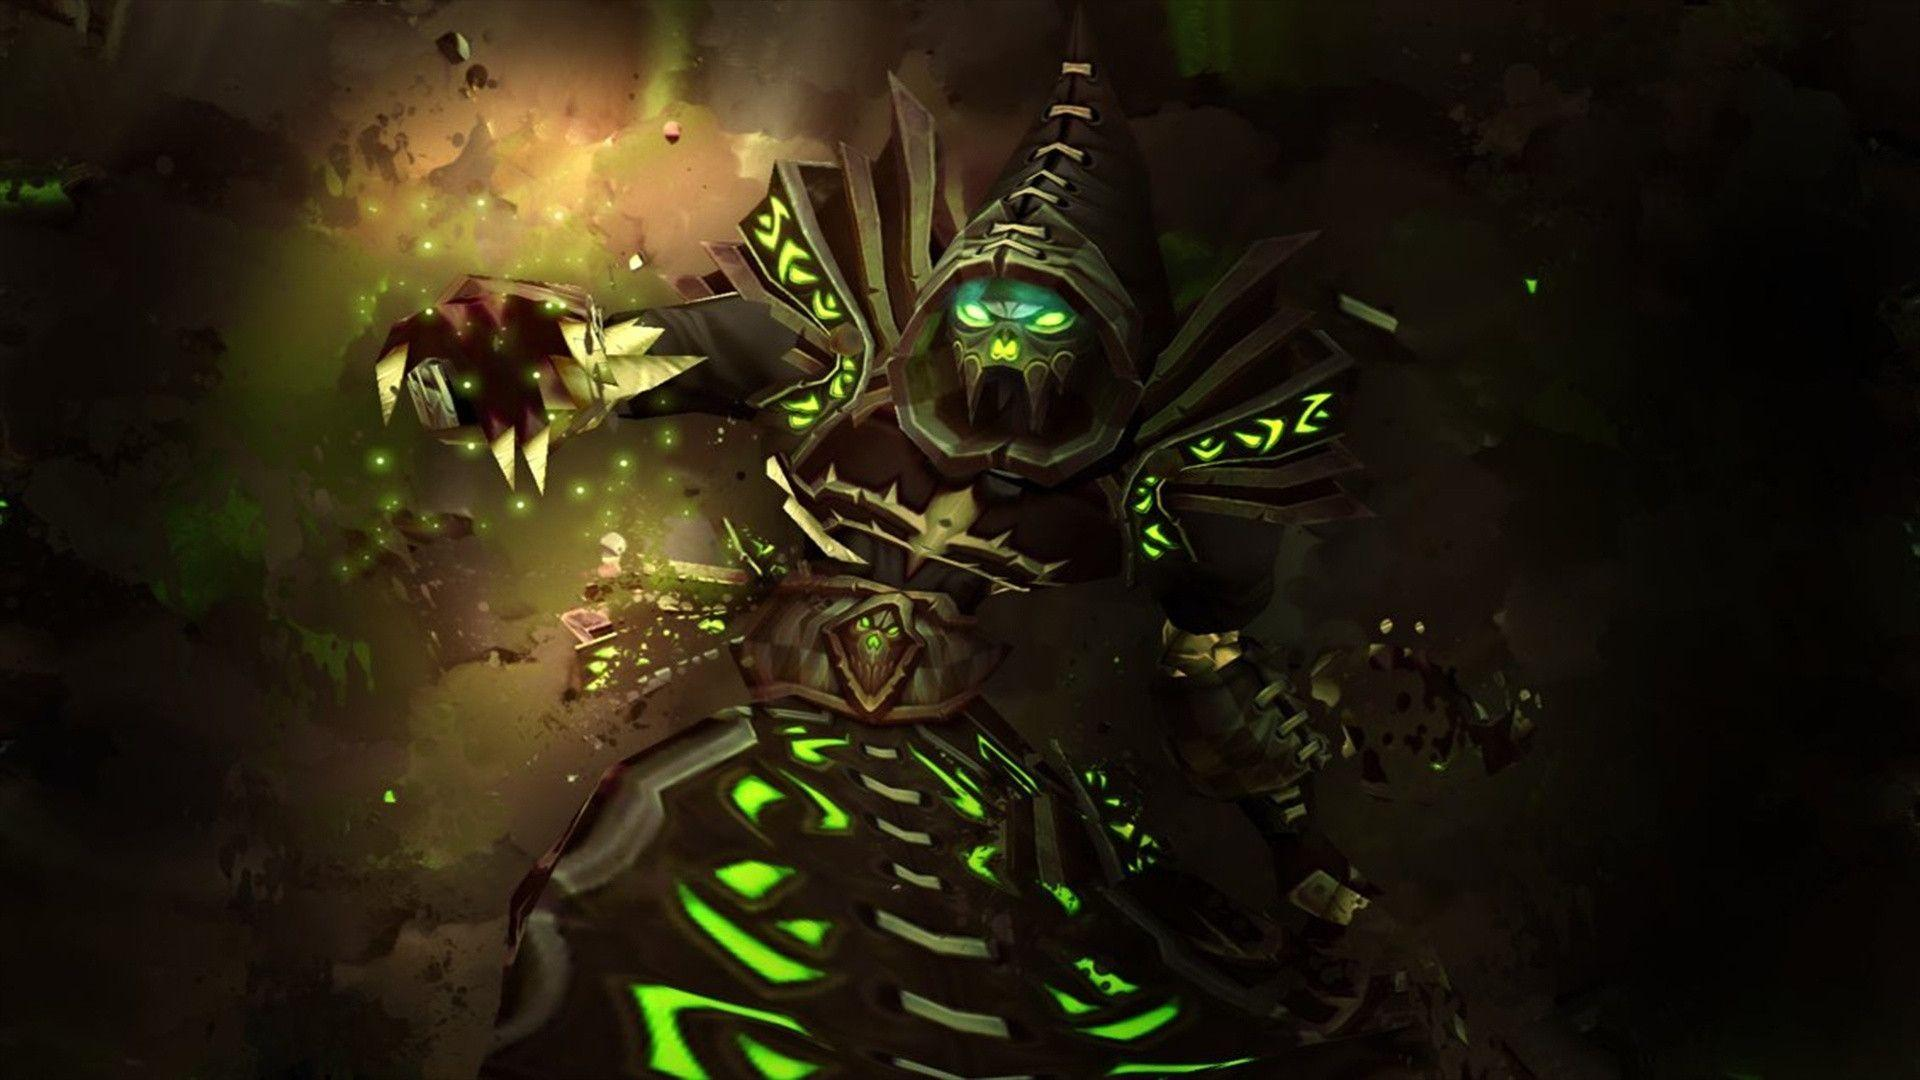 World Of Warcraft Warlock Wallpapers - Wallpaper Cave